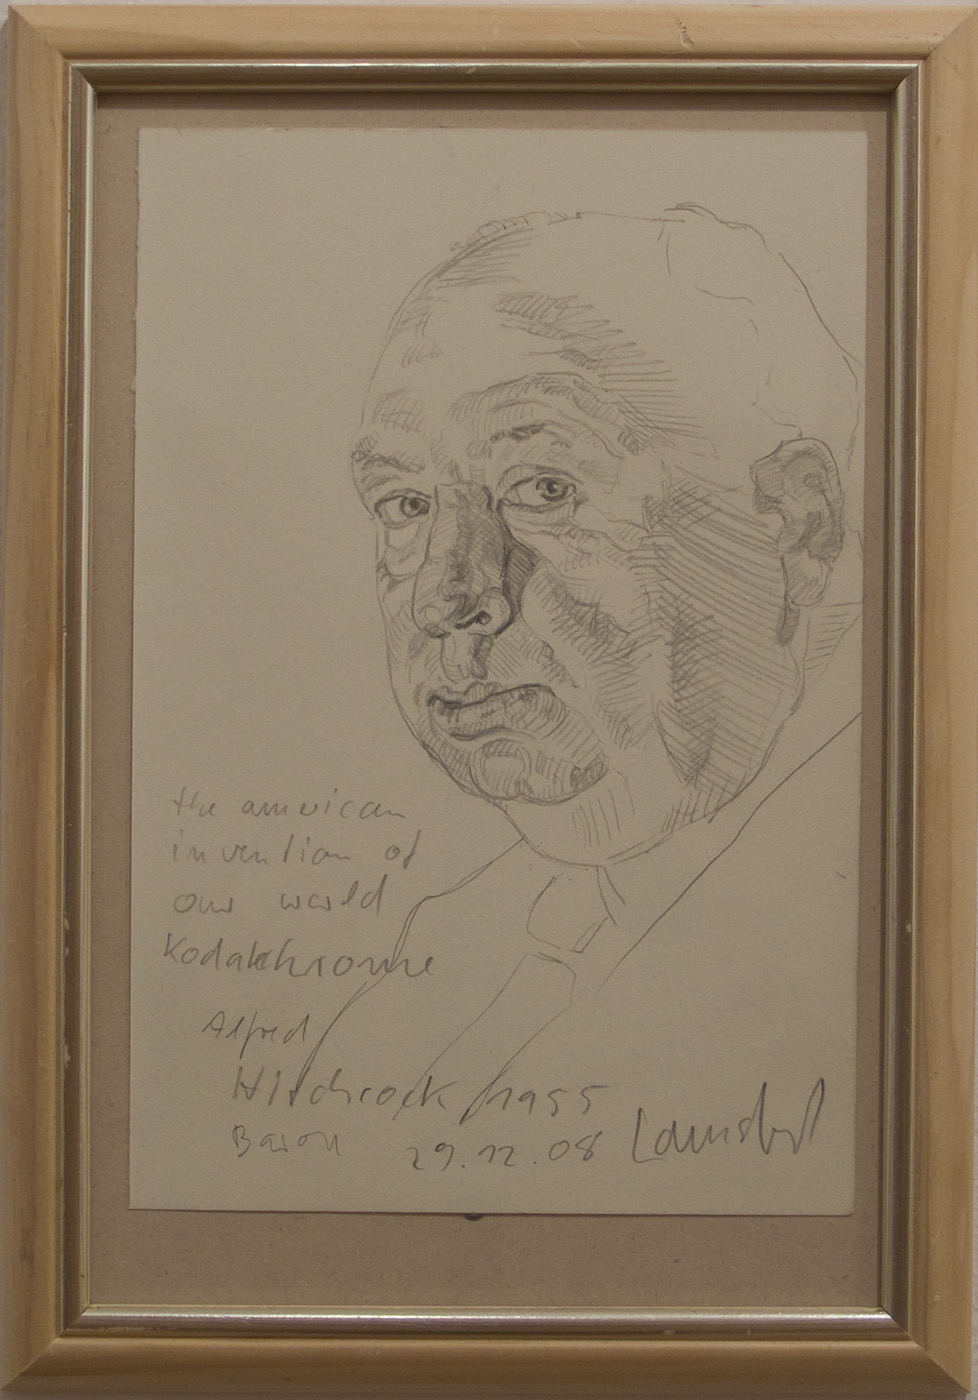 Ulrich Lamsfuss   Baron, Alfred Hitchcock,1955 (The American Invention of Our World. Kodachrome) , 2009 Pencil on paper, vintage frame 9 1/4 x 13 1/4 inches 23.5 x 33.7 cm